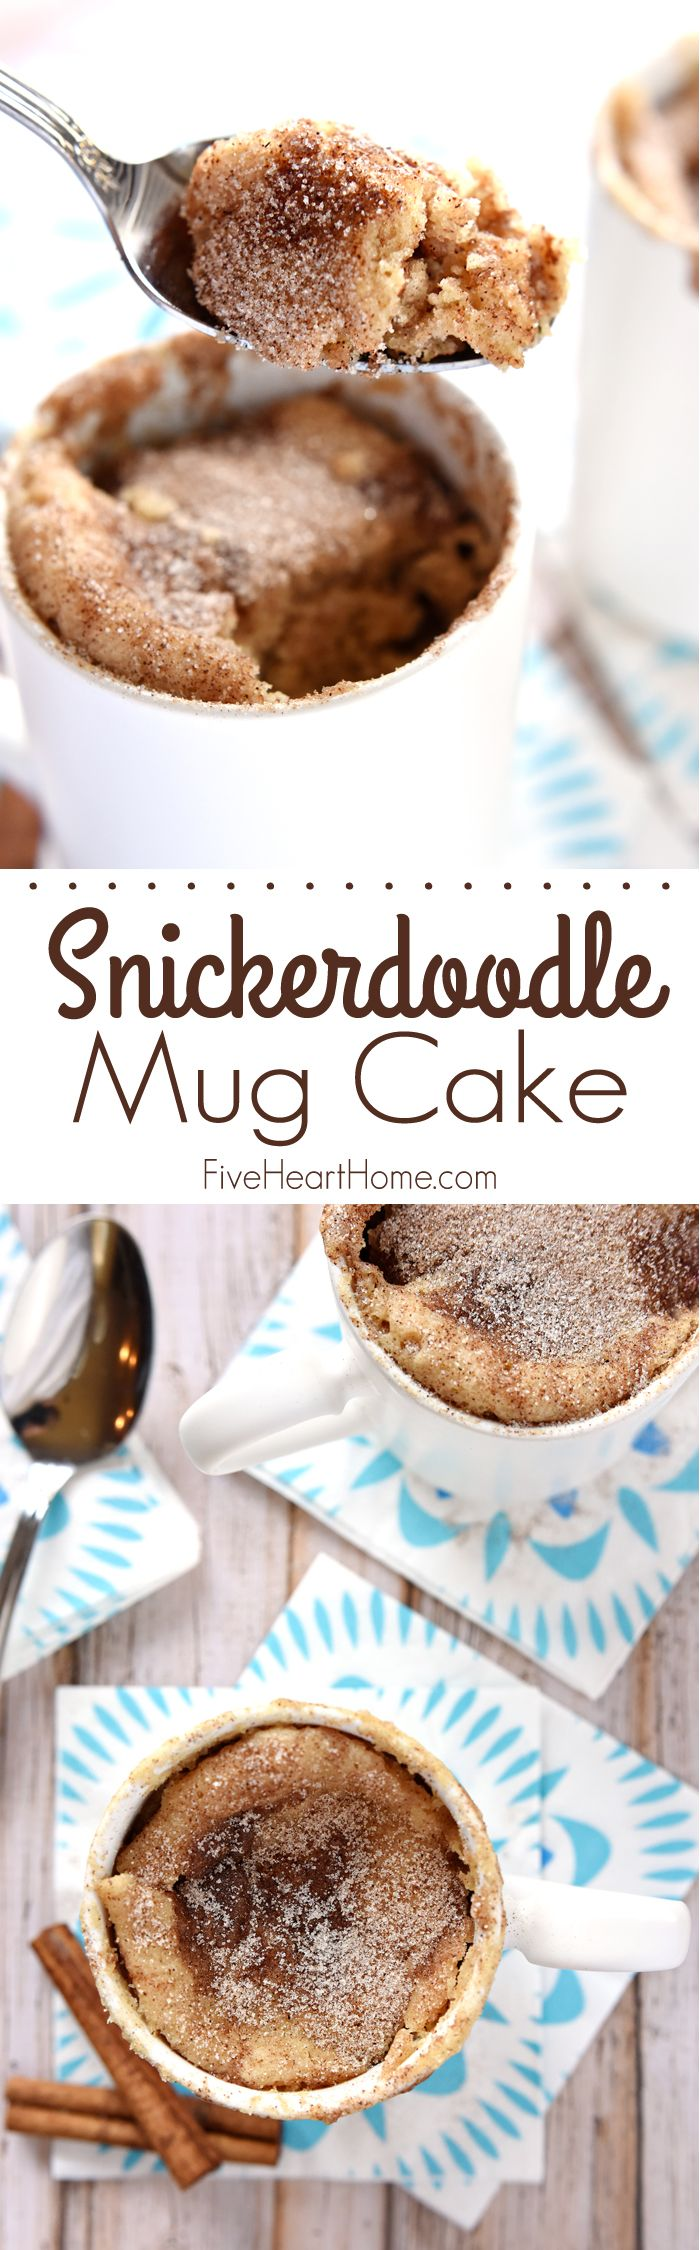 Snickerdoodle Mug Cake. Bakes up in the microwave in just one minute, yielding a warm, cinnamon-sugary treat that will satisfy any sweet tooth! | FiveHeartHome.com.